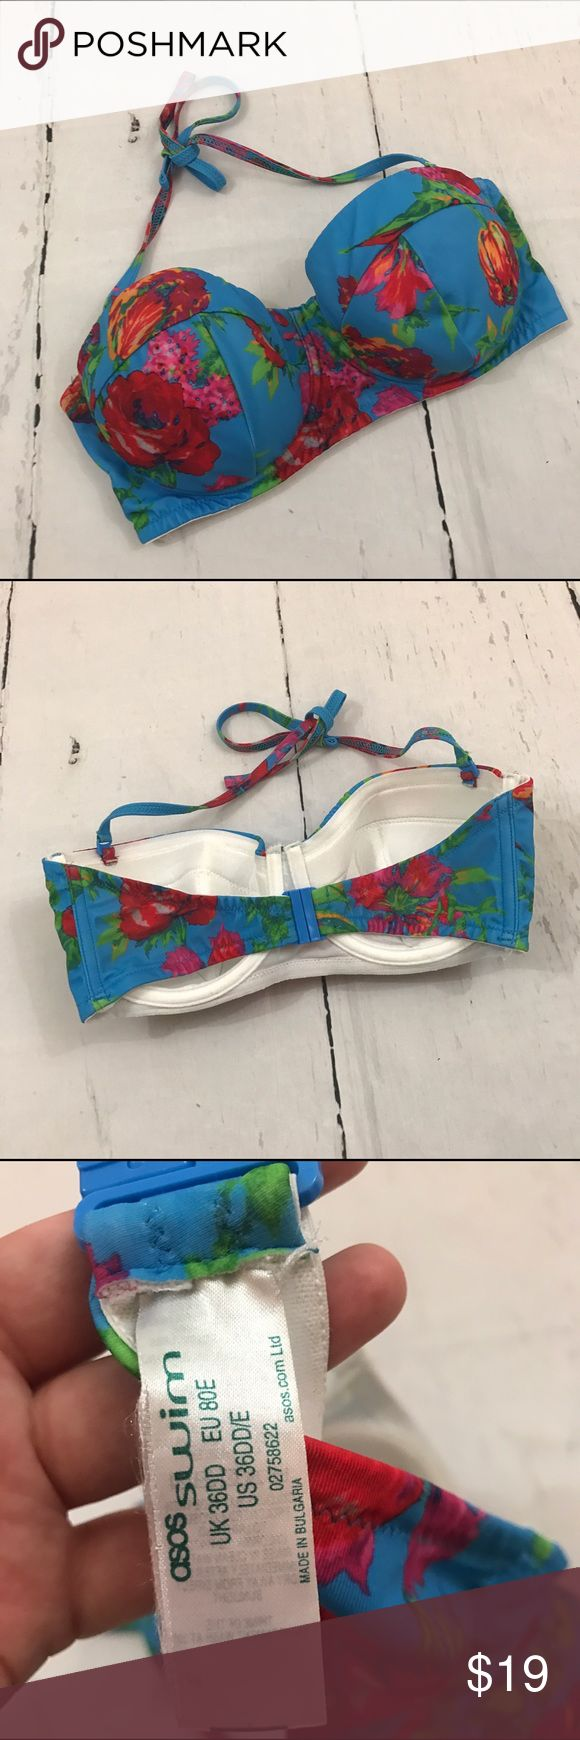 🖤🖤 ASOS BLUE FLORAL BIKINI TOP B37 Condition: Euc I do not have the matching bottoms Item location: bin 37  ❤no trades/no modeling❤ ASOS Swim